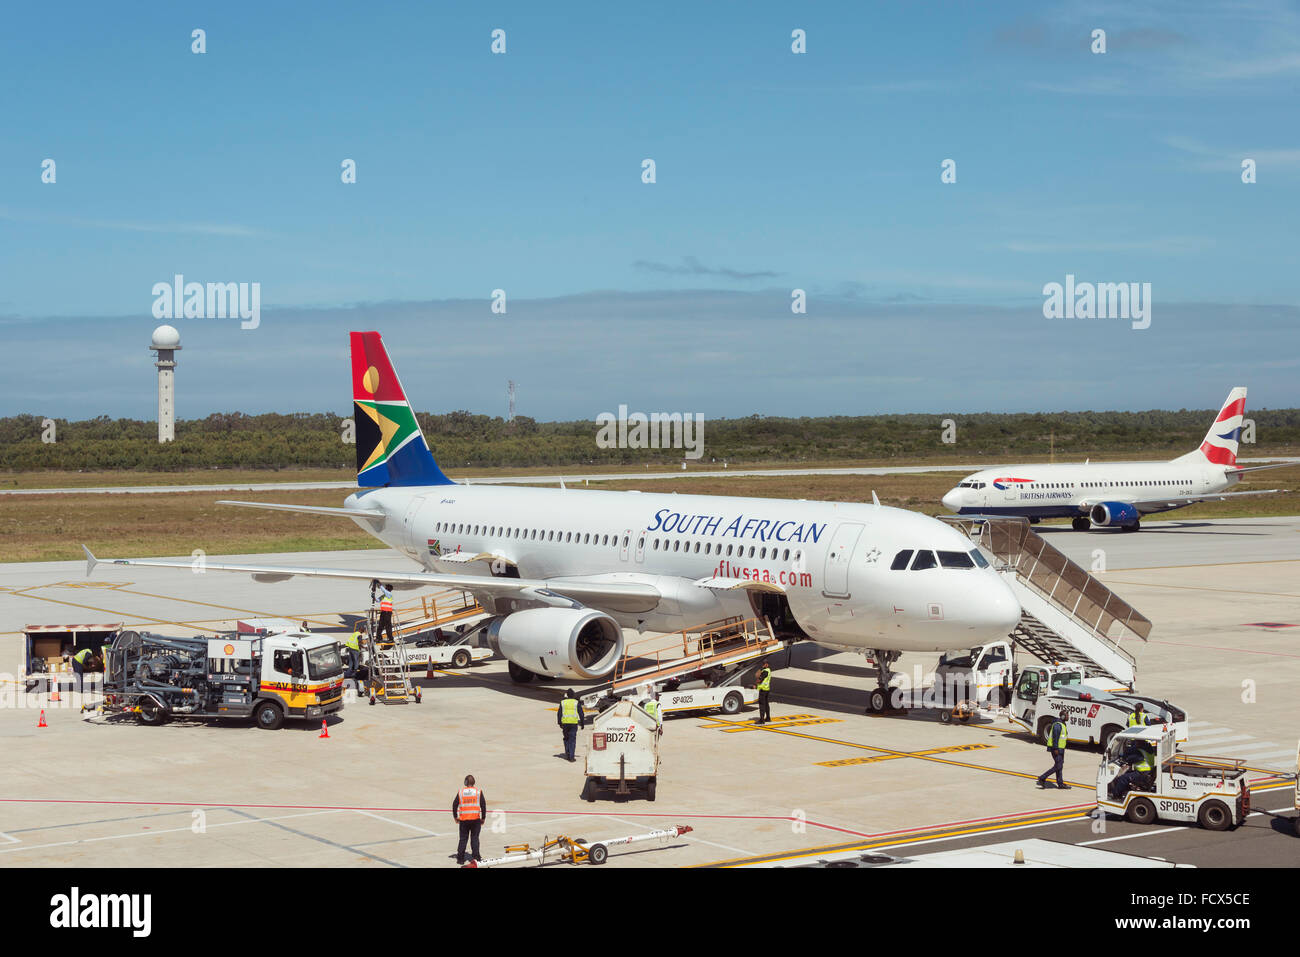 South African Airways Airbus A320 che, Port Elizabeth Aeroporto Internazionale di Port Elizabeth, Capo orientale, Immagini Stock